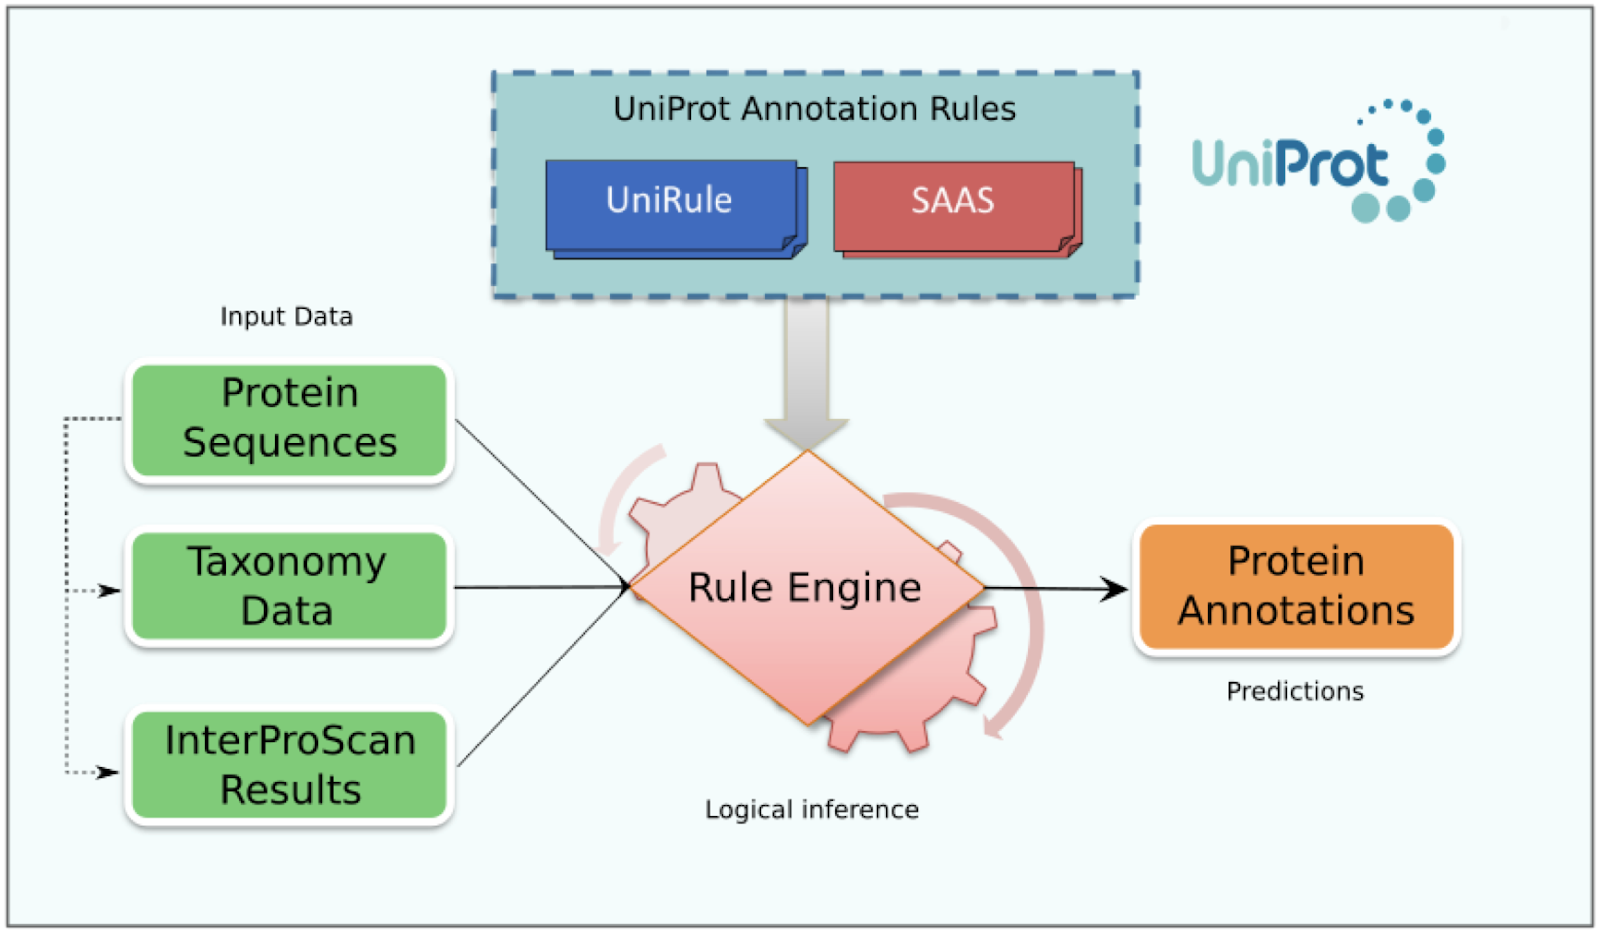 Inside UniProt: Would you like to annotate function with UniProt's